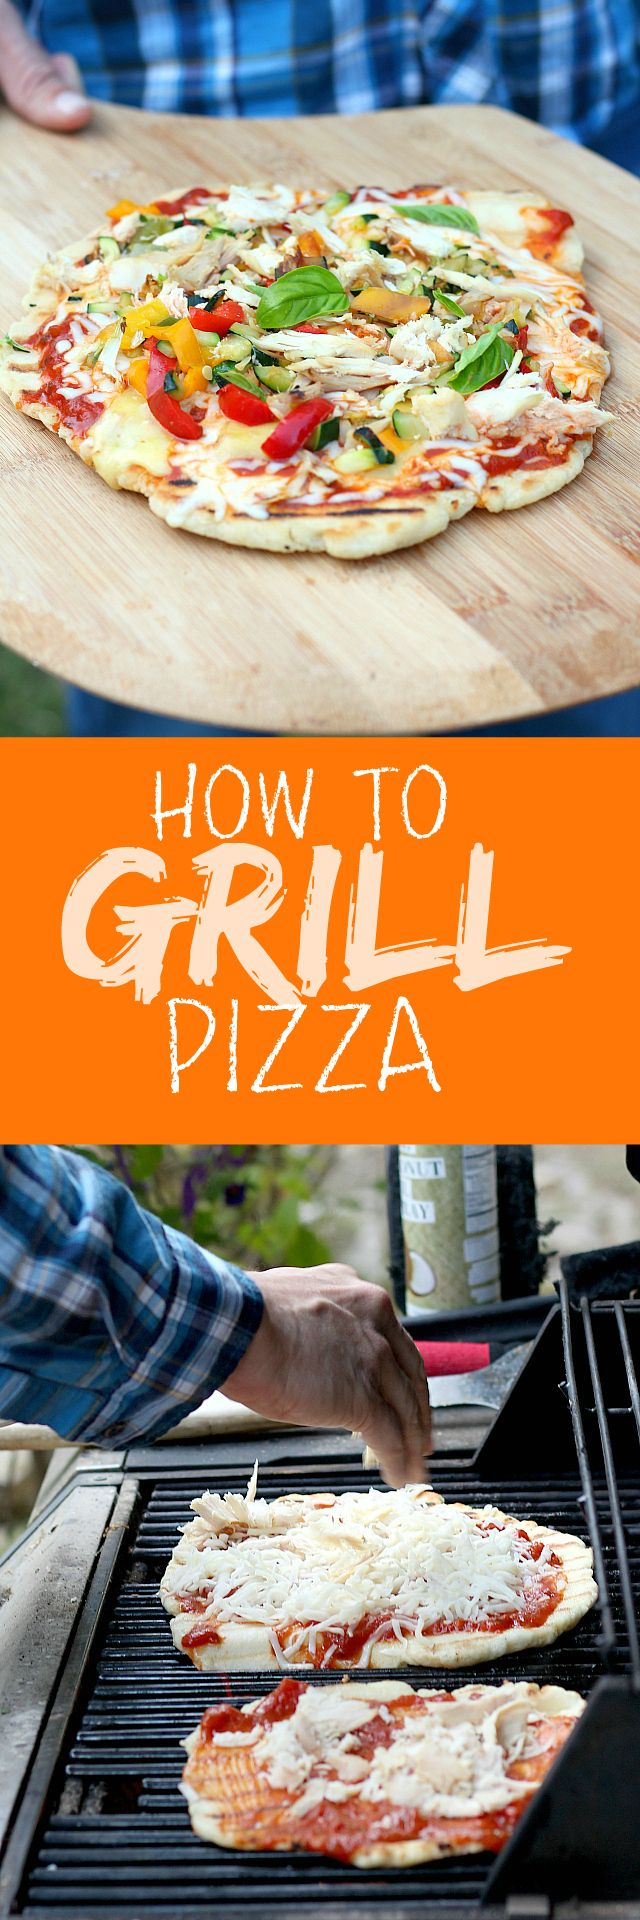 How to make the most Excellent Grilled Pizza! Less than 10 minutes to grill for a crispy thin crust.